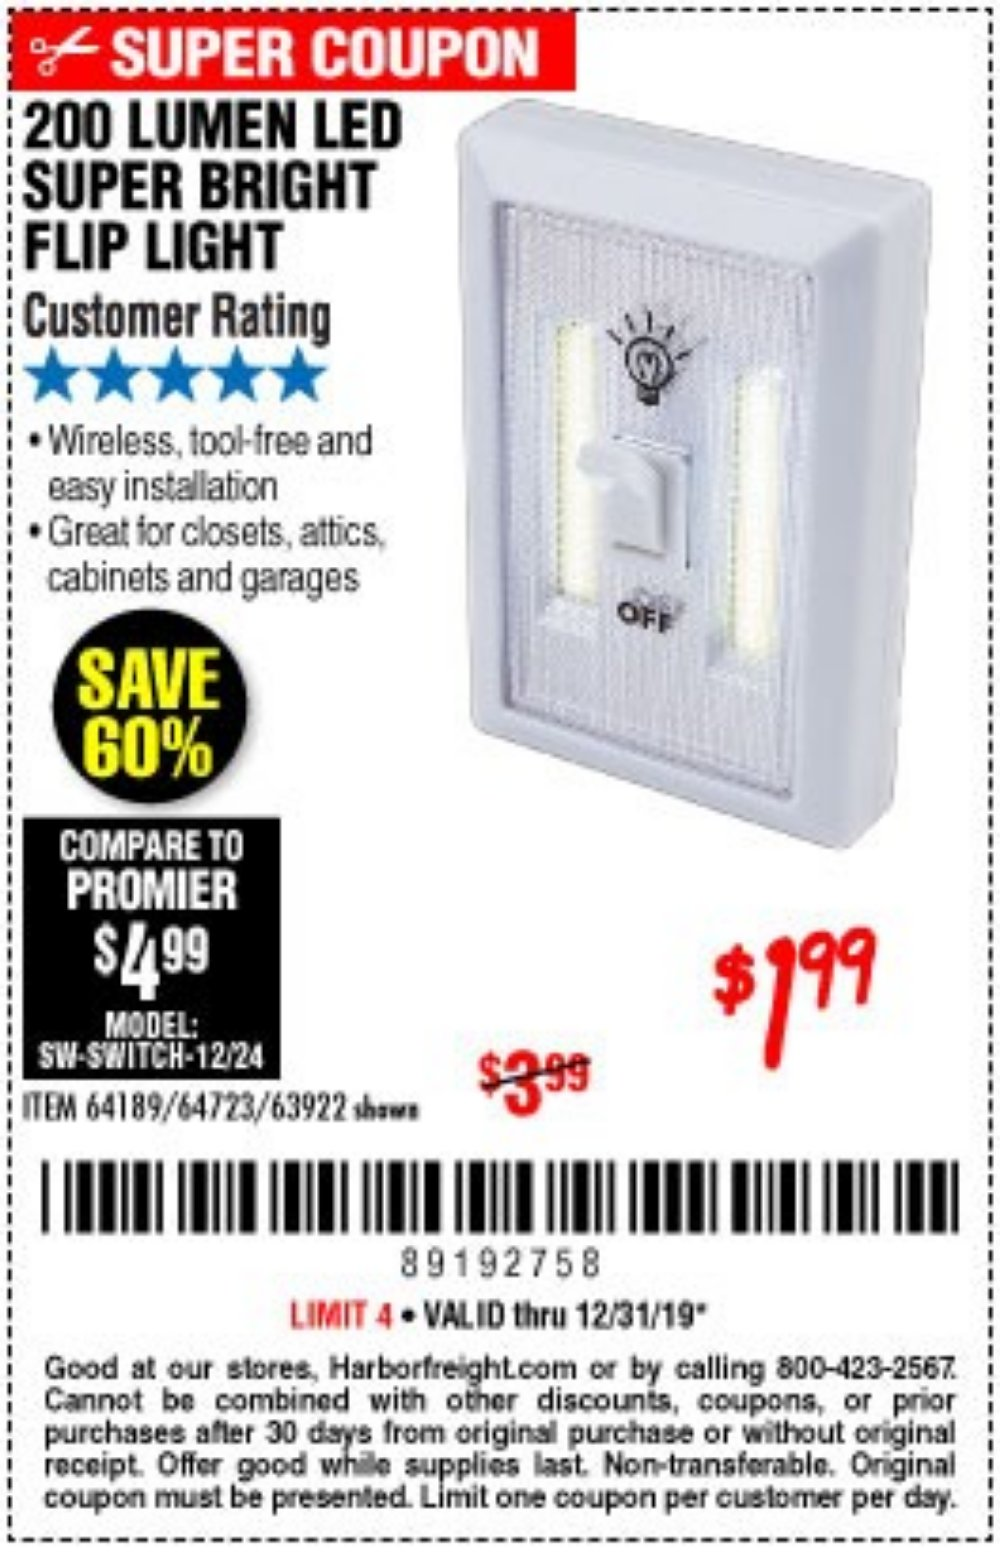 Harbor Freight Coupon, HF Coupons - Led Super Bright Flip Light